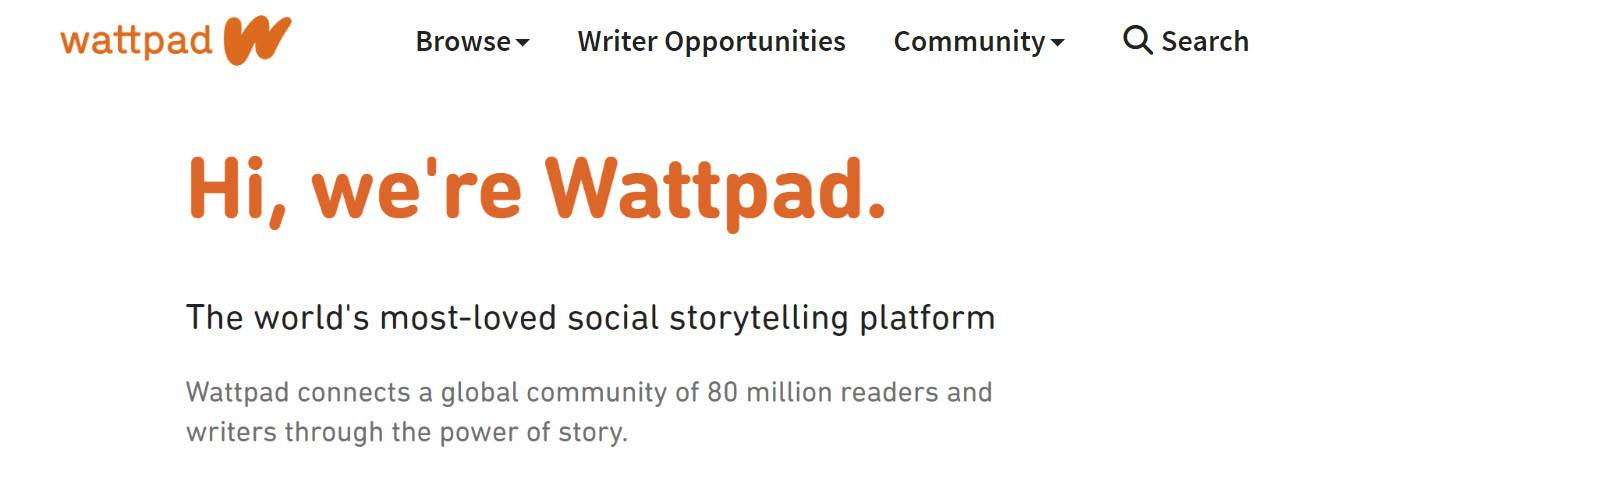 Wattpad - Best Online Content Writing Jobs From Home